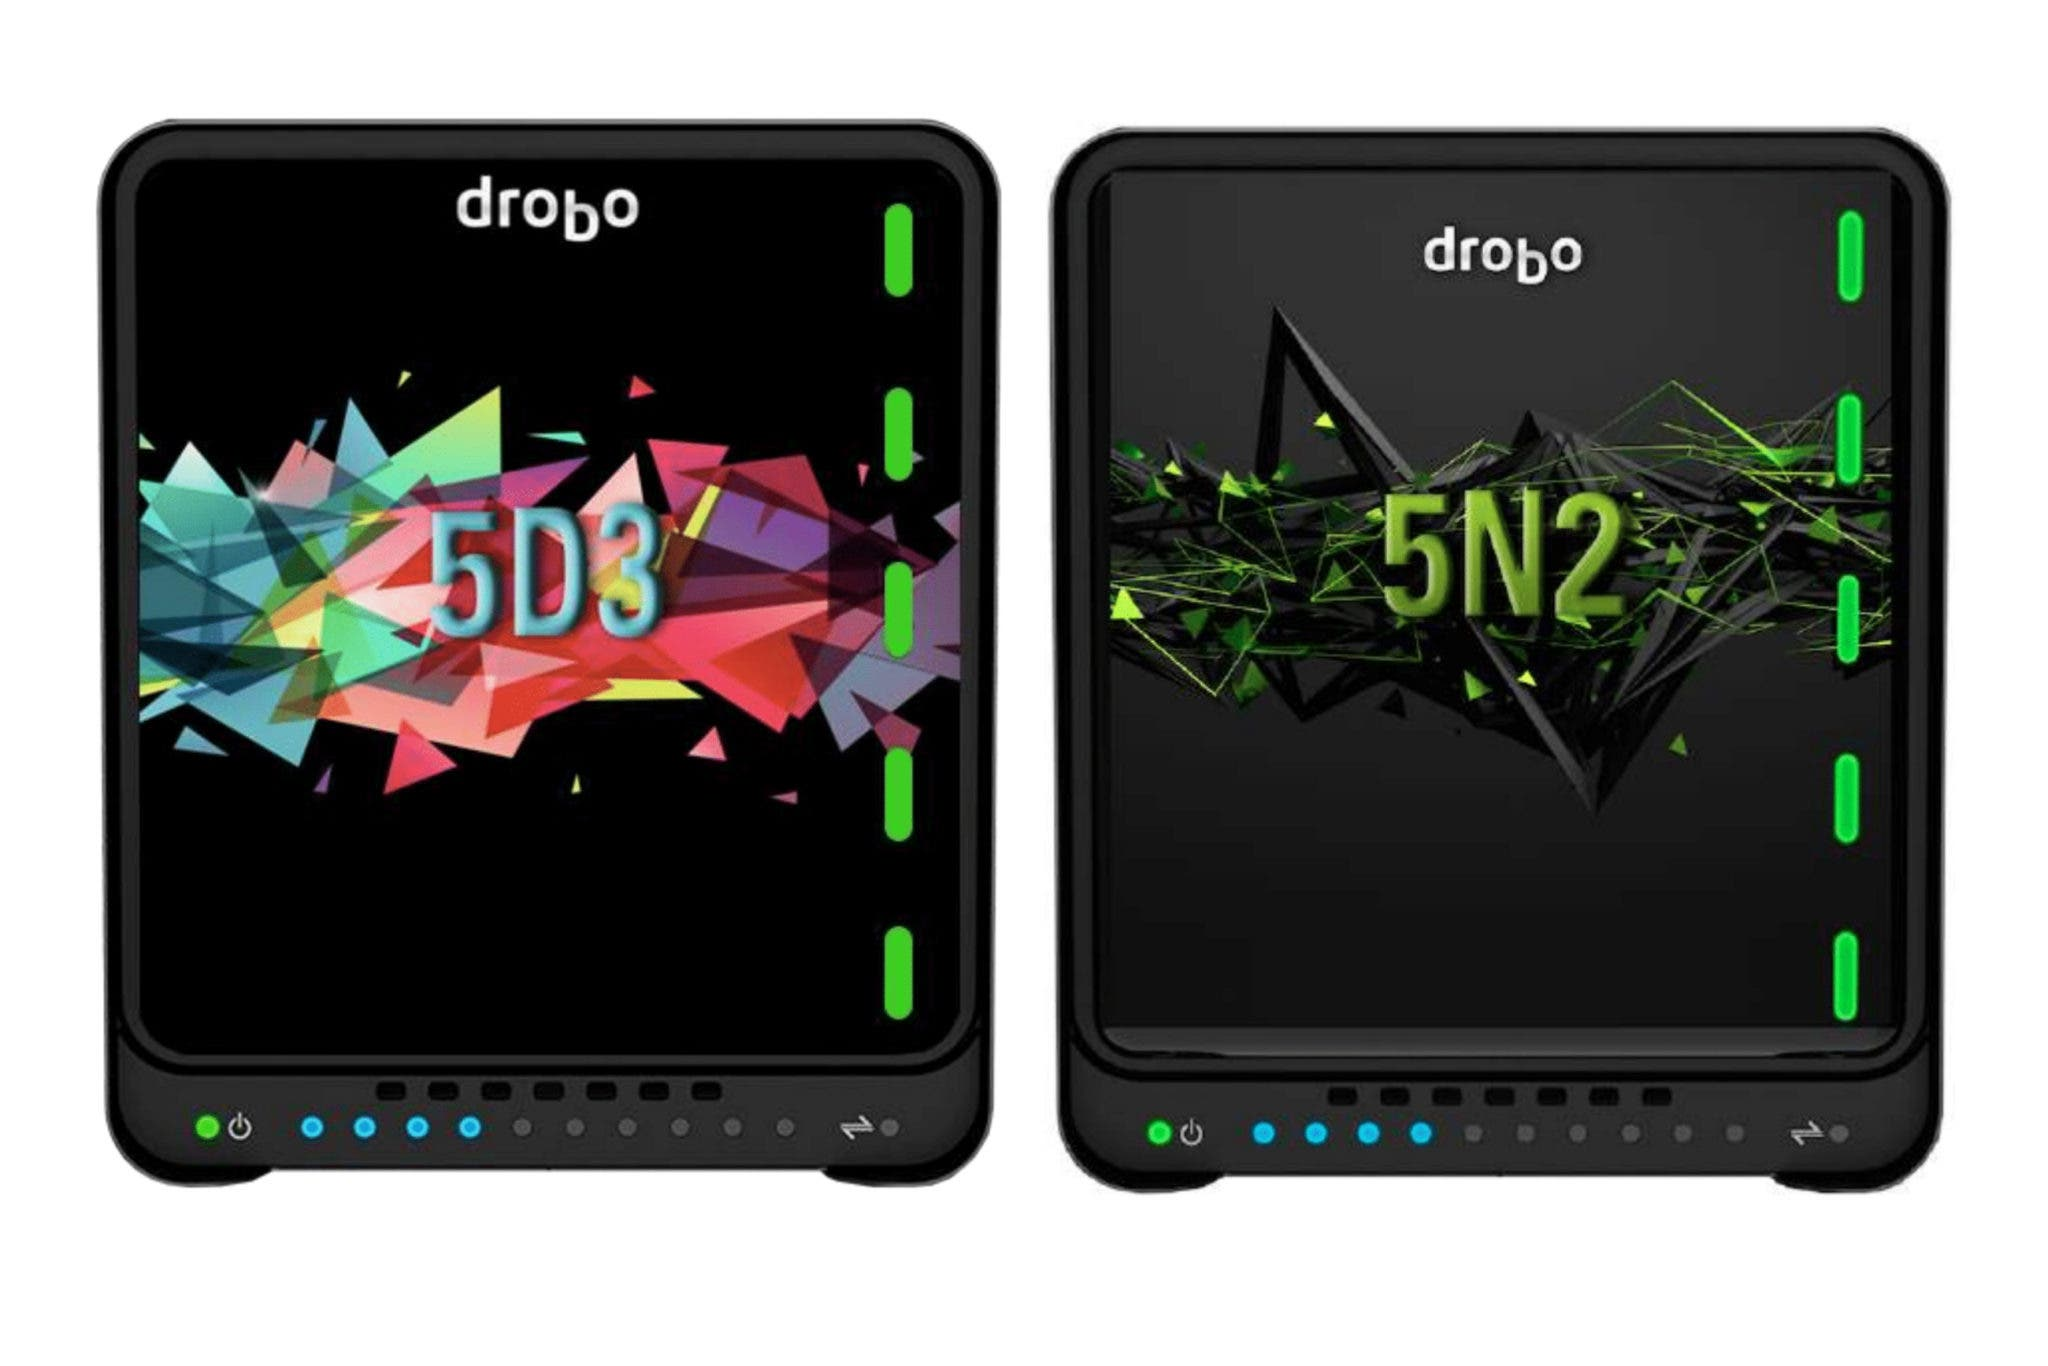 Drobo Announces New 5D3 and 5N2 Gold and Platinum Editions